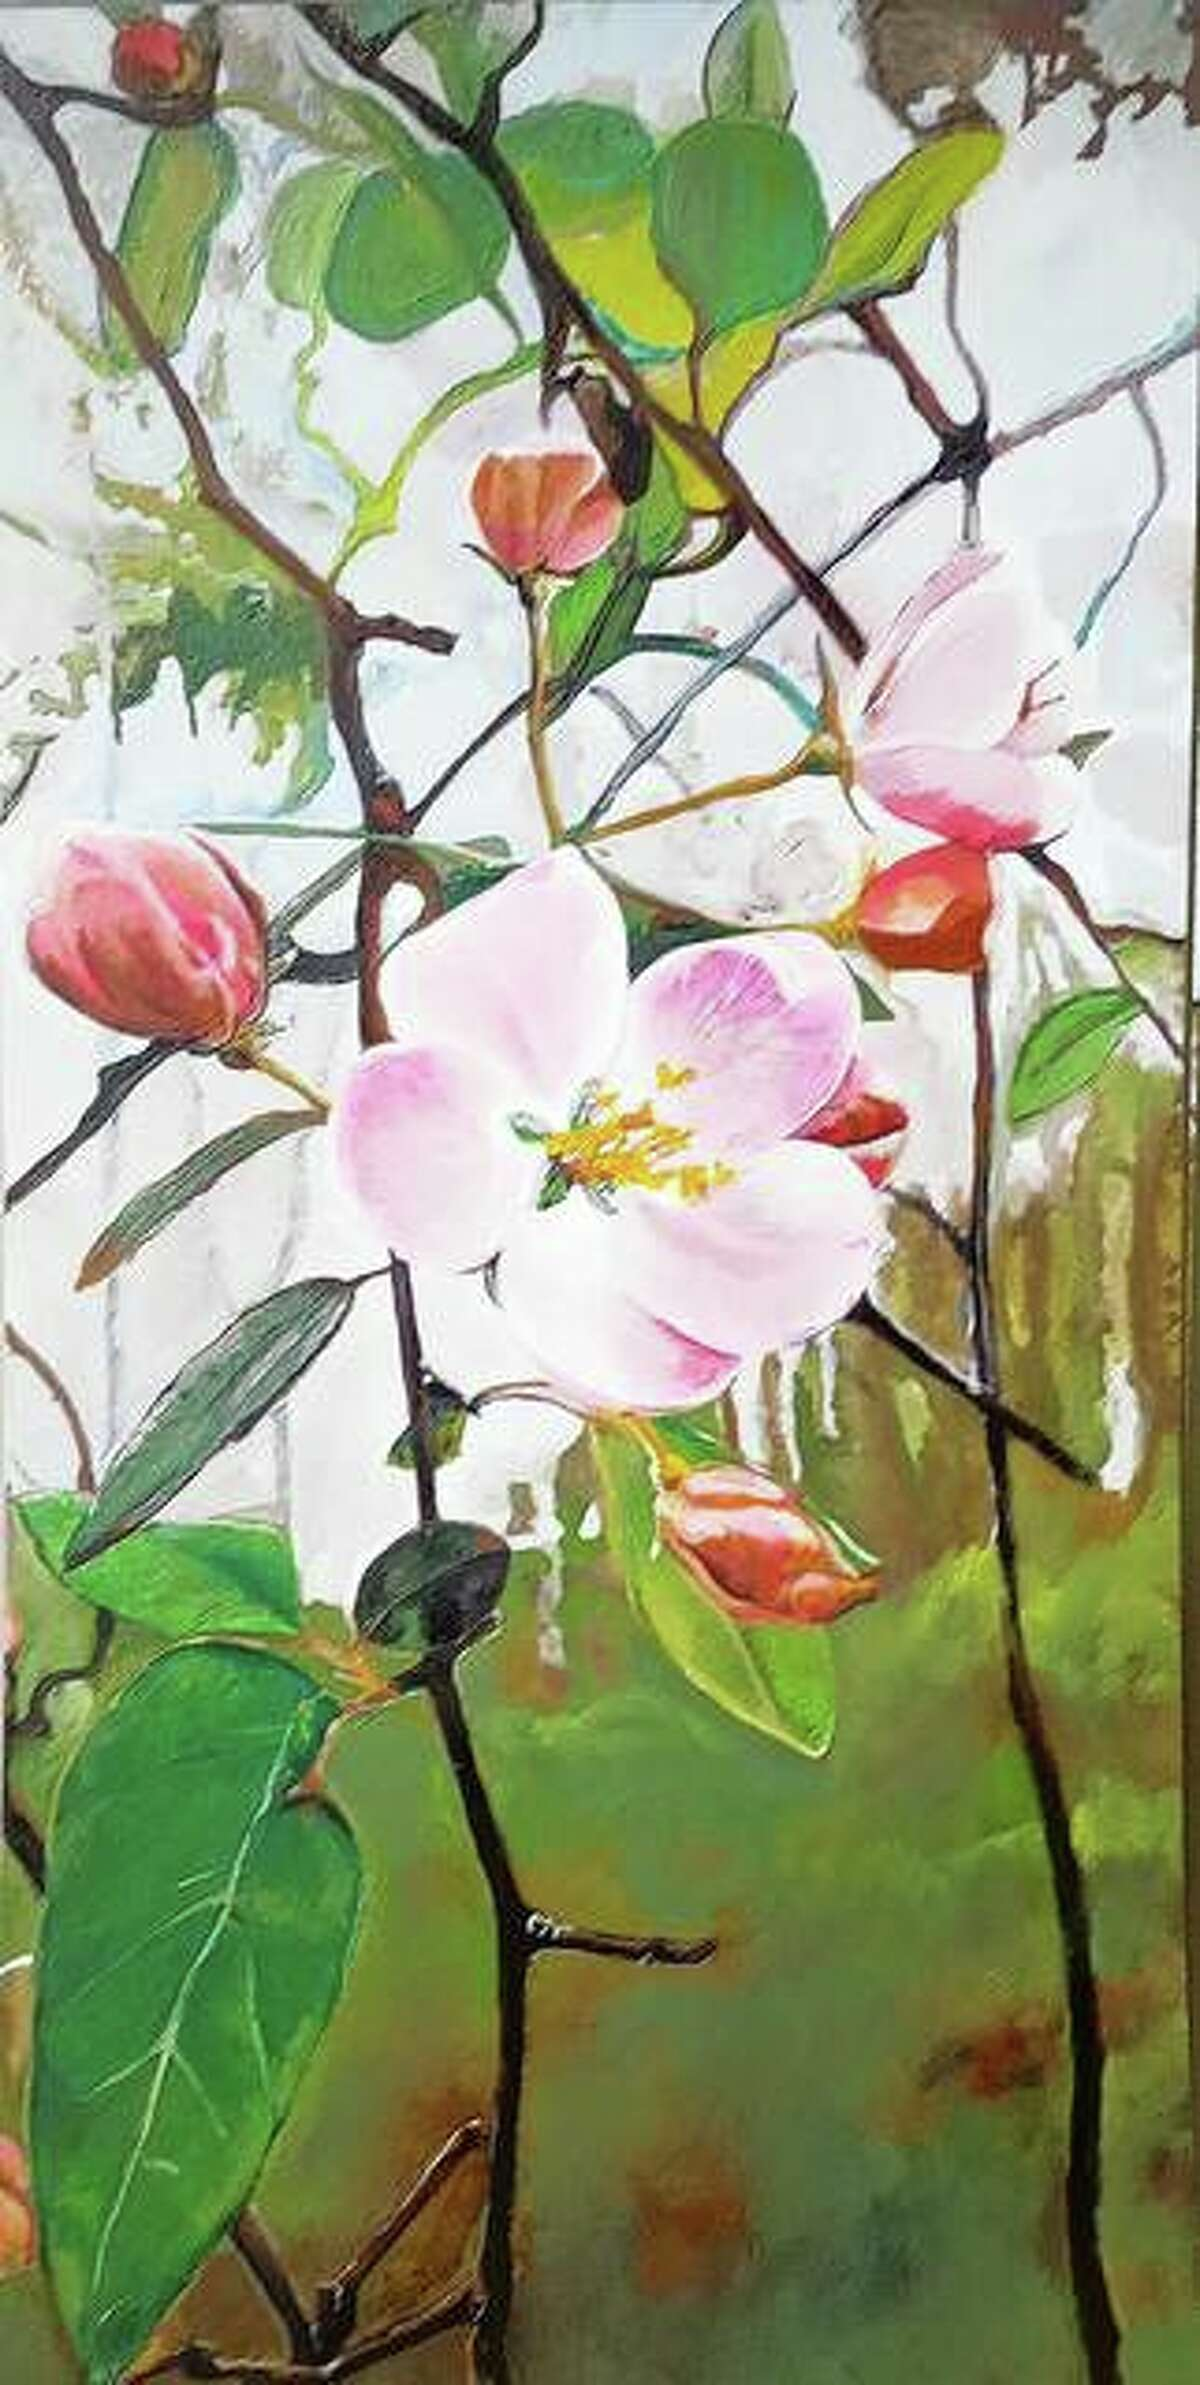 """Artist Amy Denny's """"Iowa Crab Apple"""" will be displayed starting Sept. 11 at the David Strawn Art Gallery as part of the Art Association of Jacksonville's 2021-22 gallery season. Paintings by Kevin Veara also will be featured in the joint show."""